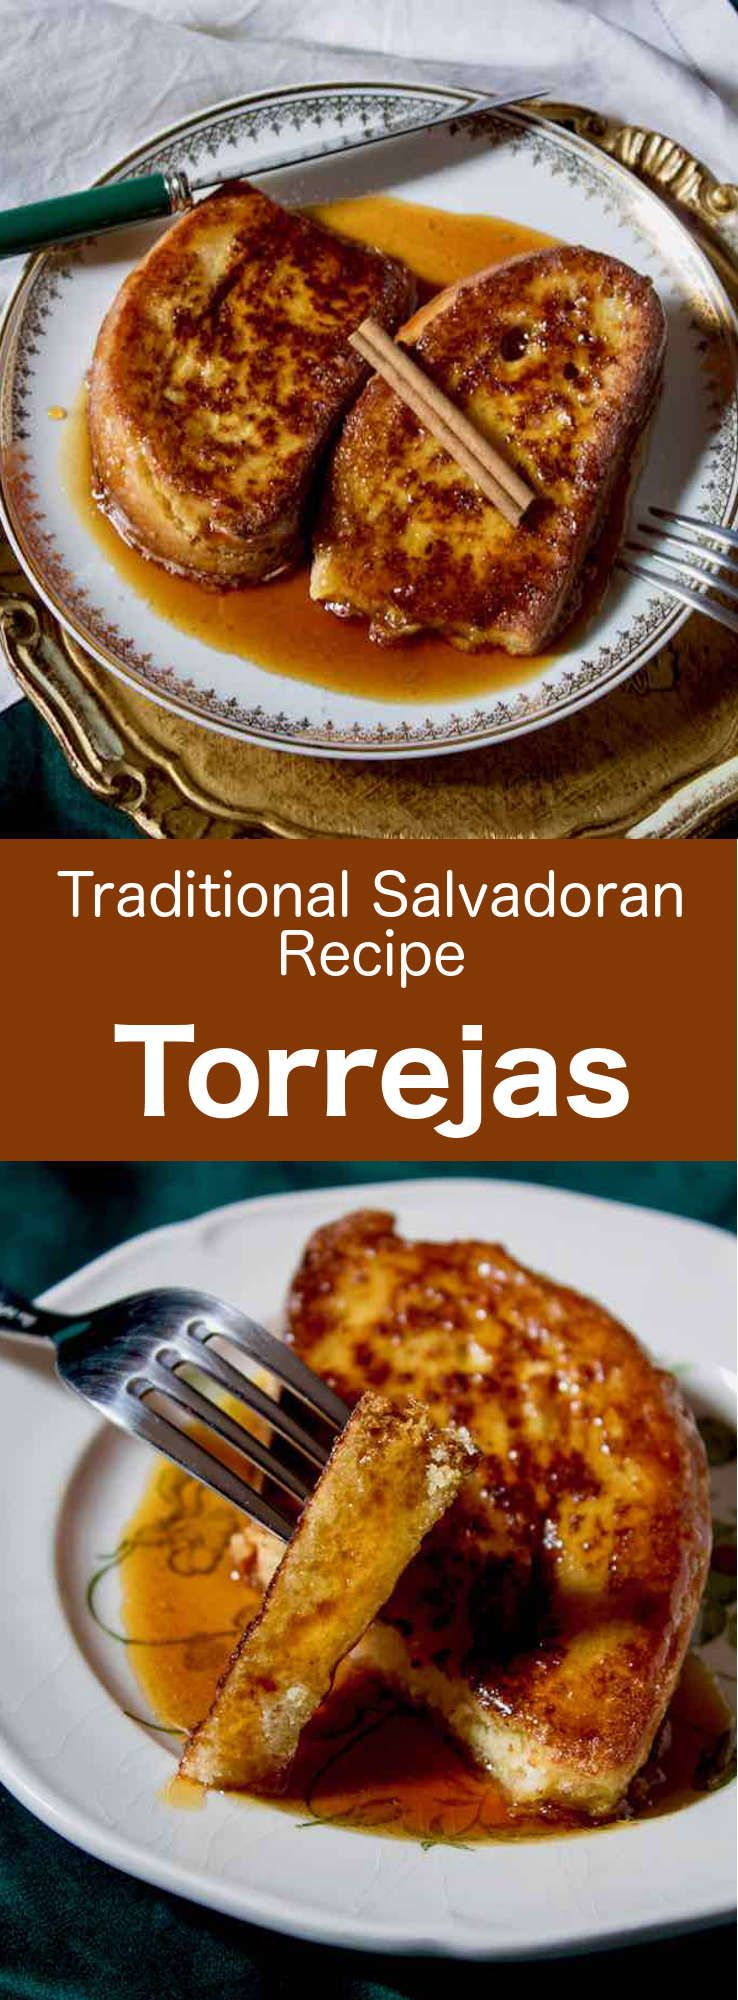 Torrejas are the delicious Latin American version of the French toast. They are traditionally served with panela syrup and various spices. #CentralAmericanCuisine #CentralAmericanRecipe #SalvadoranCuisine #SalvadoranRecipe #WorldCuisine #196flavors via @196flavors #elsalvadorfood